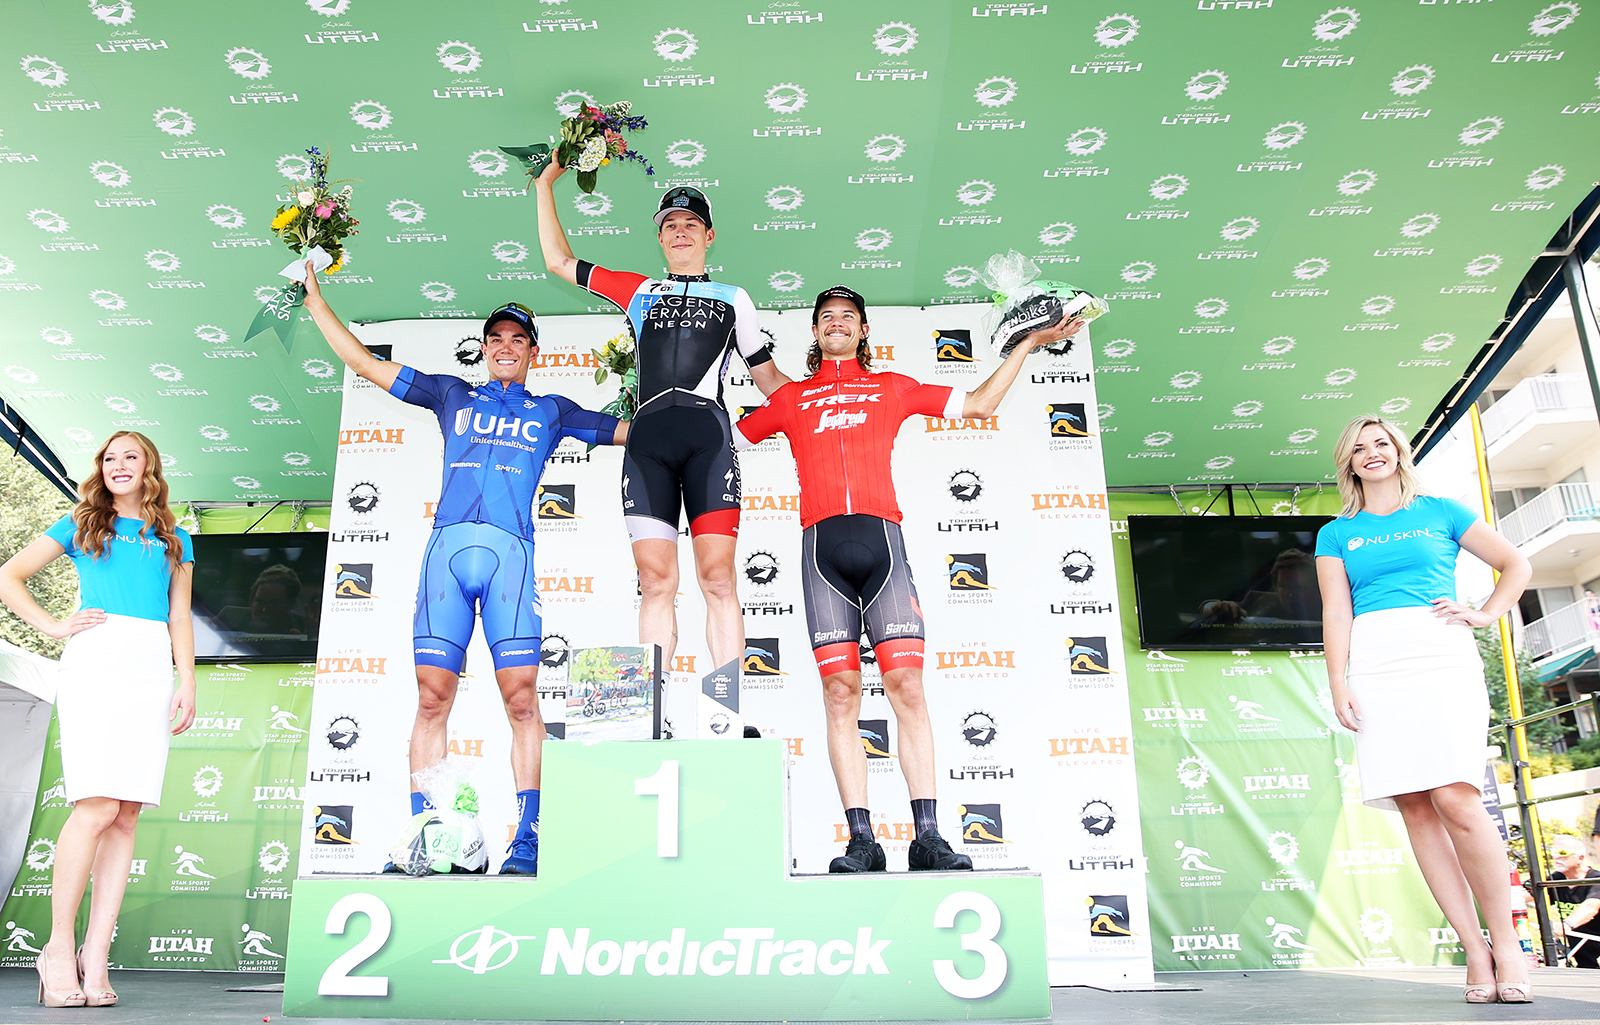 Stage 4 podium. 2018 Tour of Utah Stage 4, August 8, 2018, Salt Lake City, Utah. Photo by Cathy Fegan-Kim, cottonsoxphotography.net